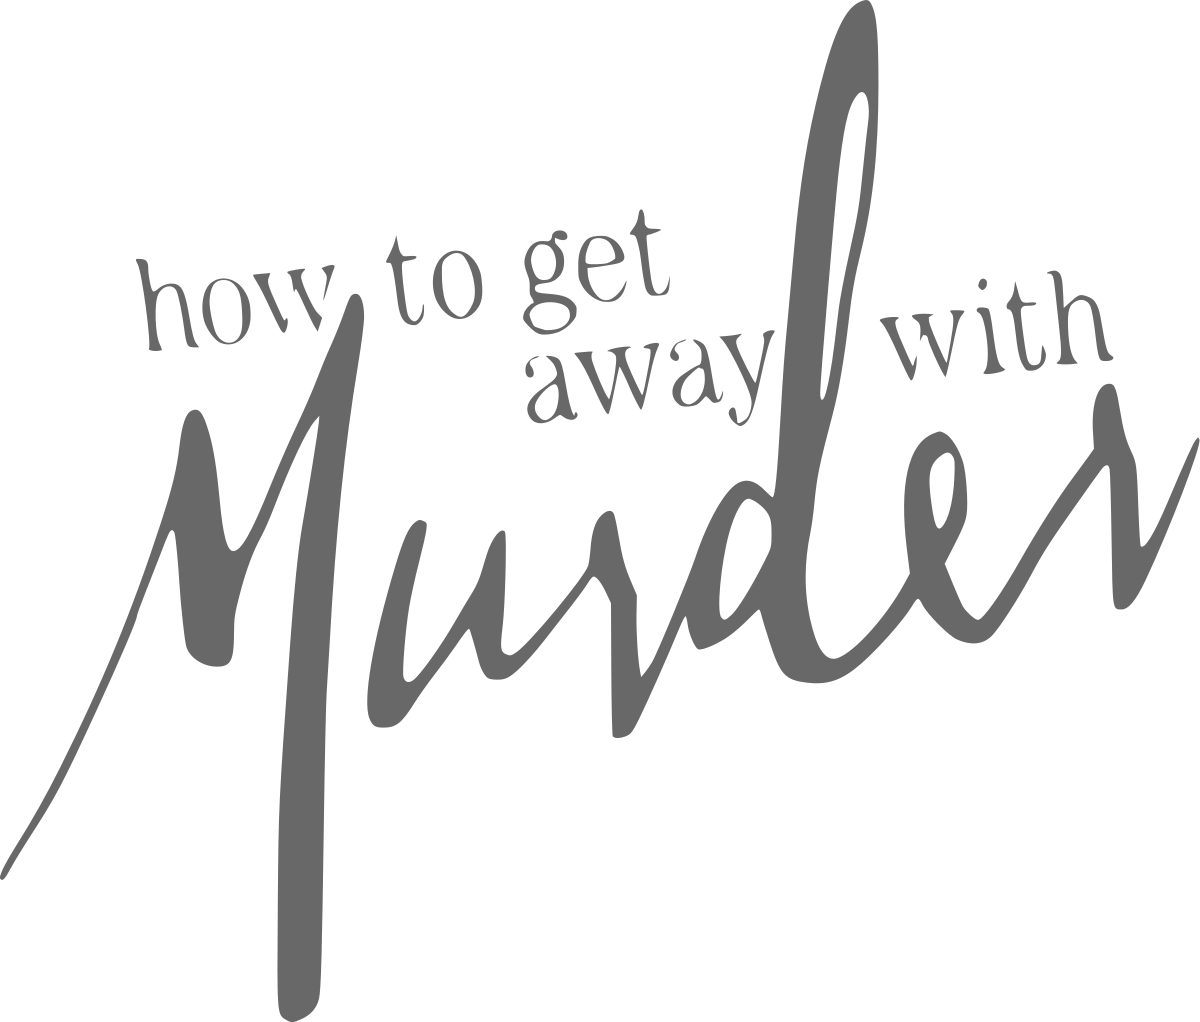 1200px-How_to_Get_Away_with_Murder_logo_2.GREY.png